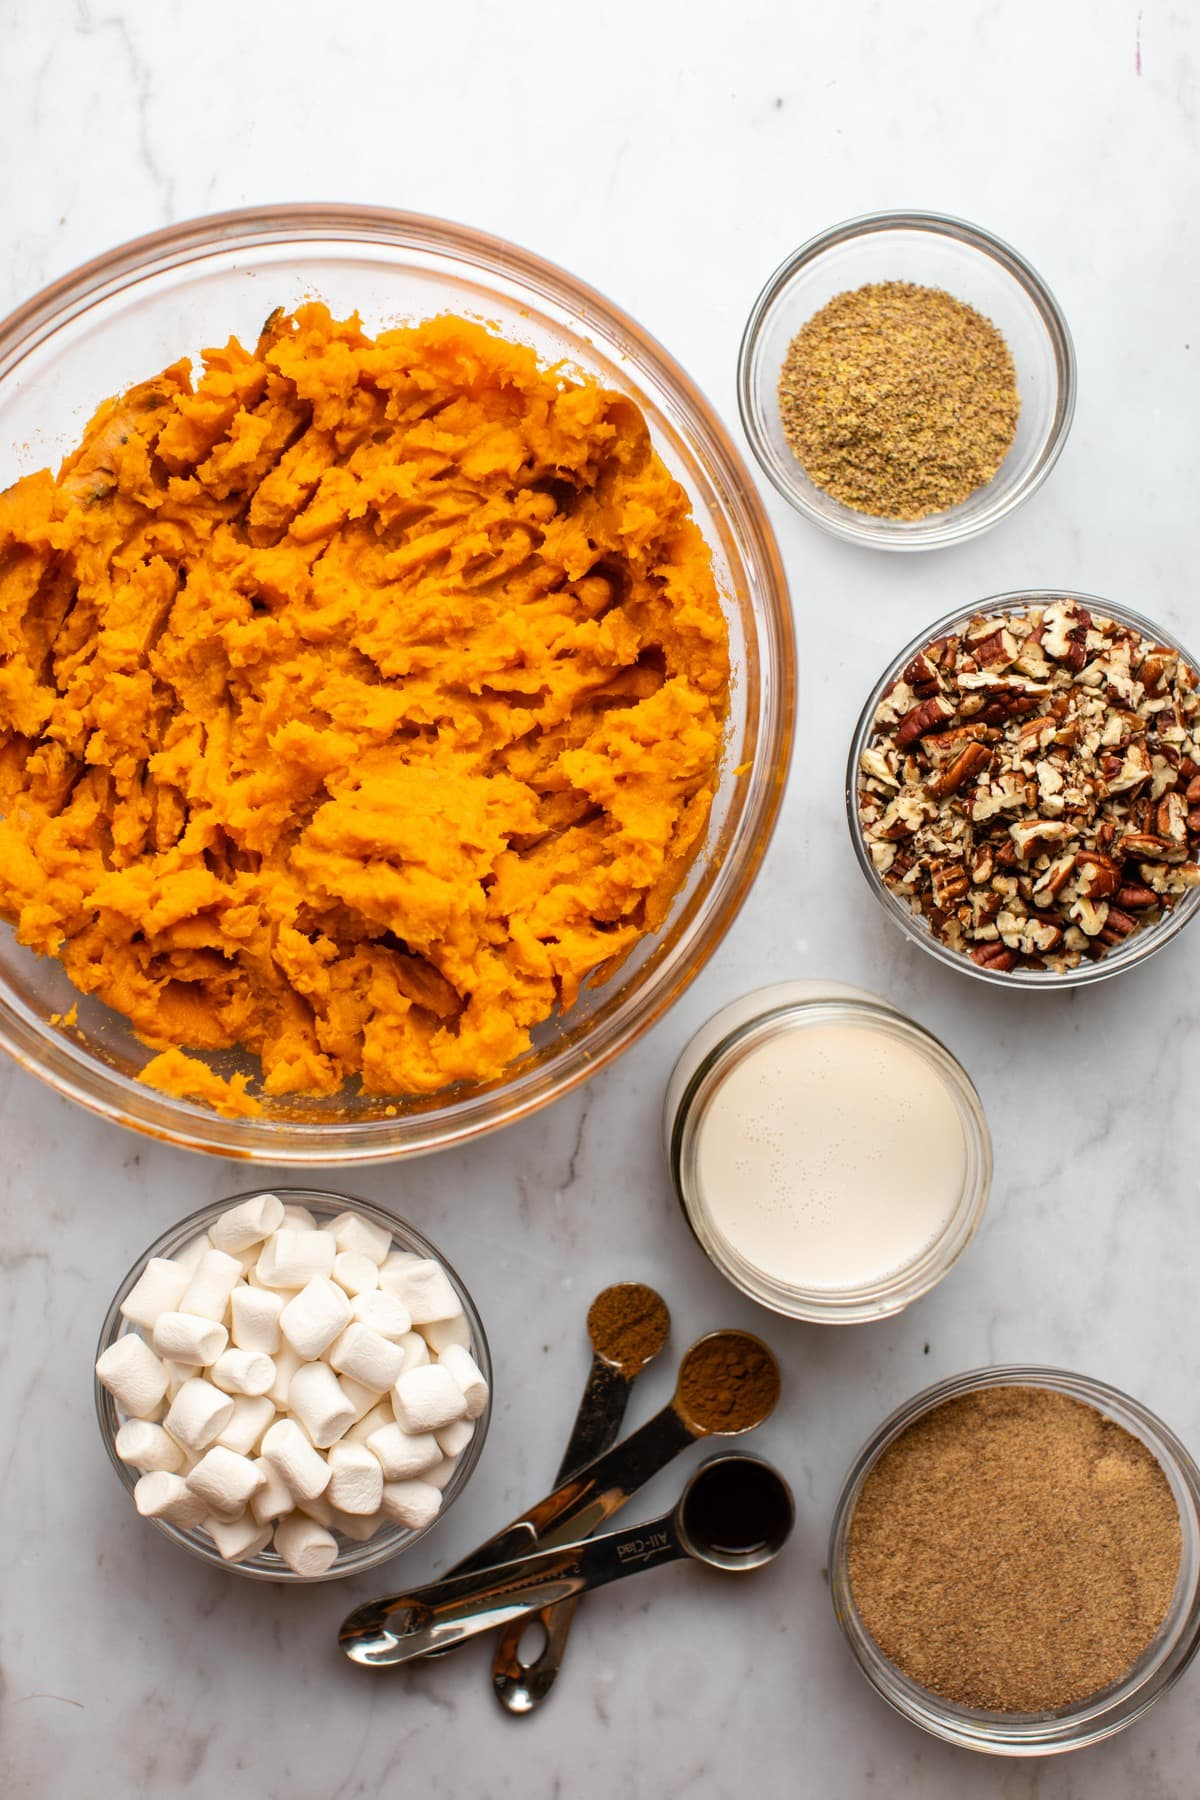 ingredients for sweet potato casserole in small glass bowls on marble background